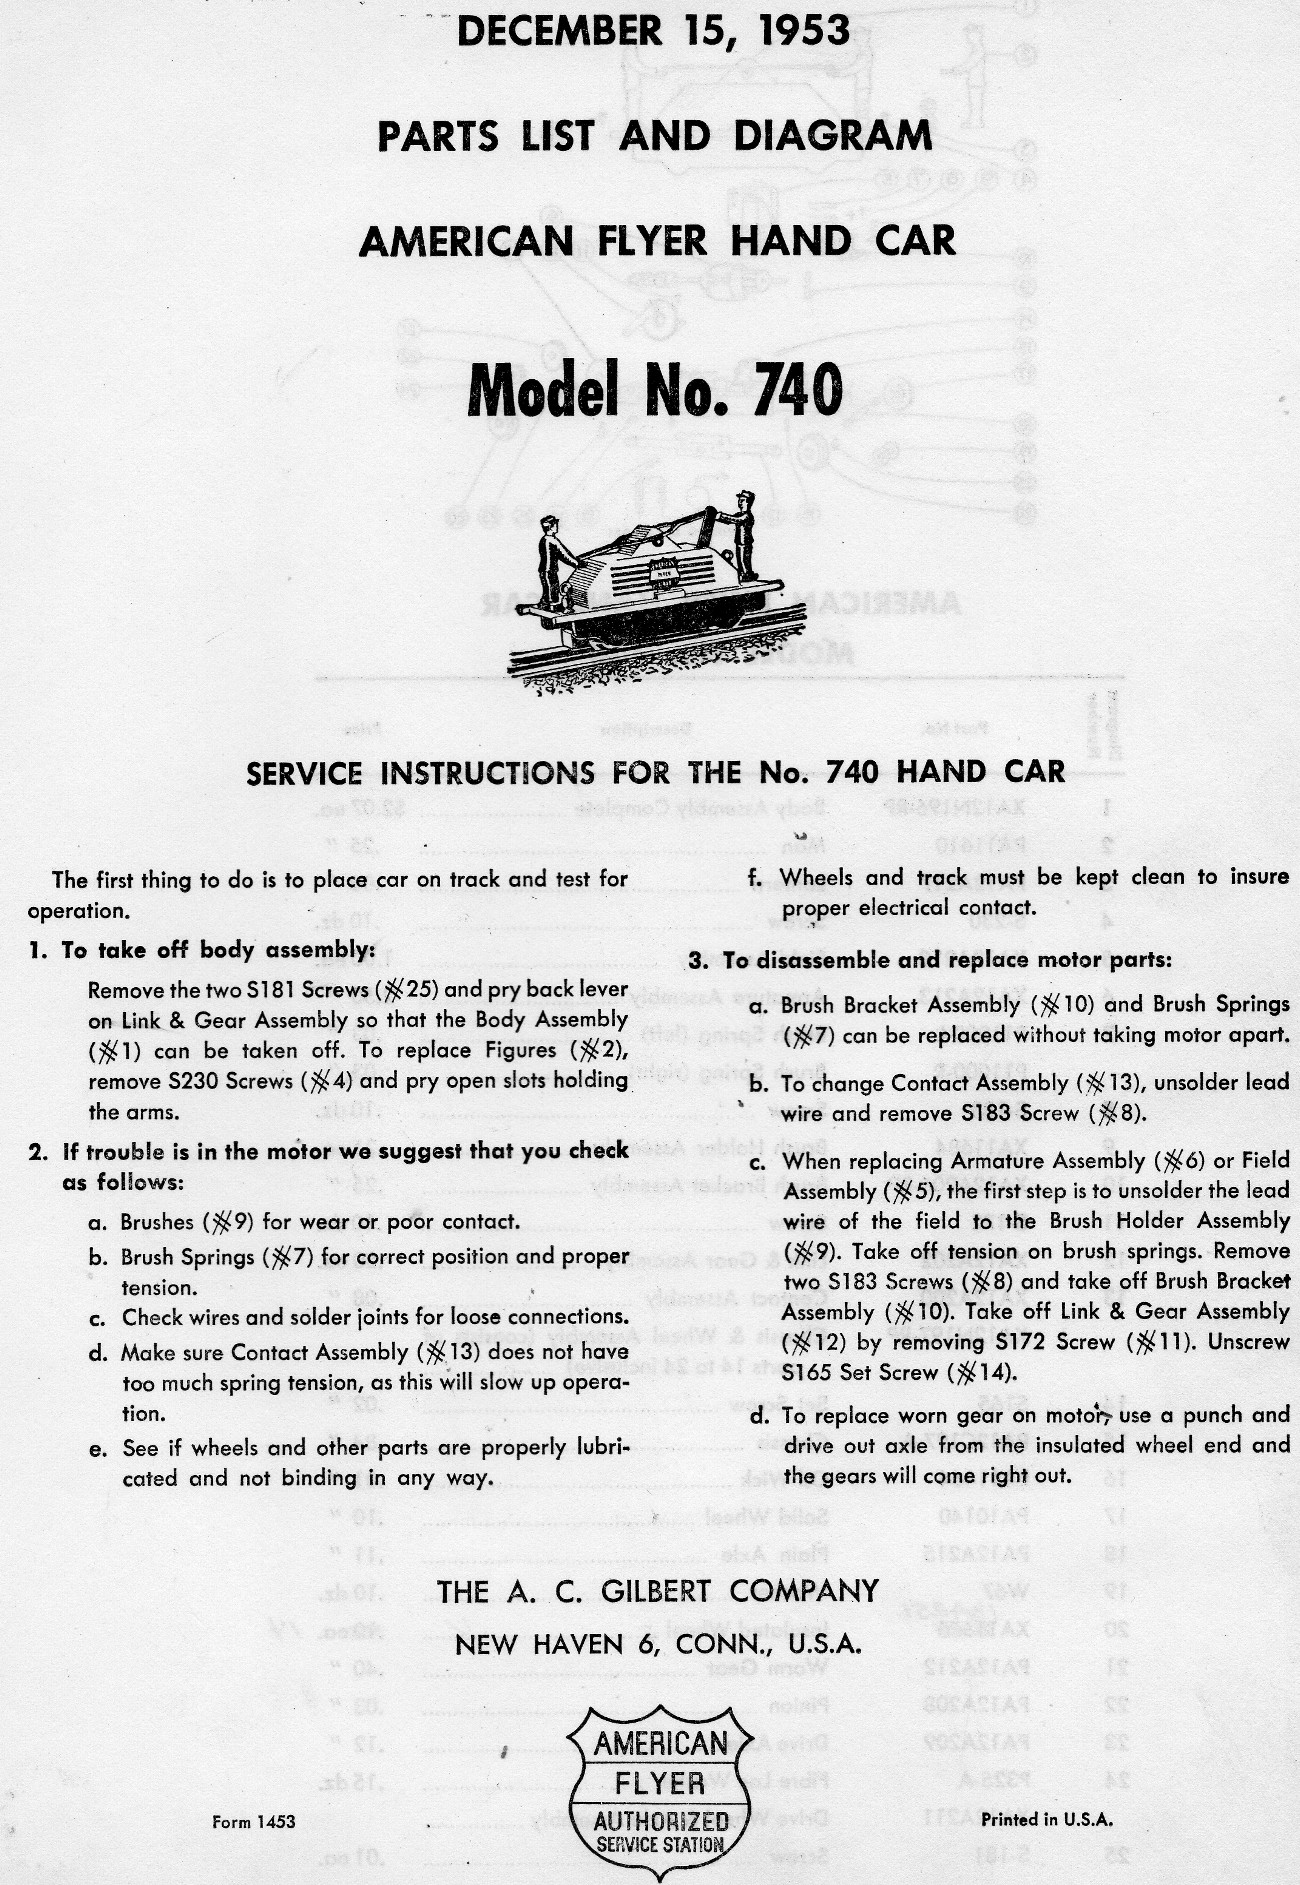 American Flyer Hand Car 740 Parts List & Diagram - Page 1